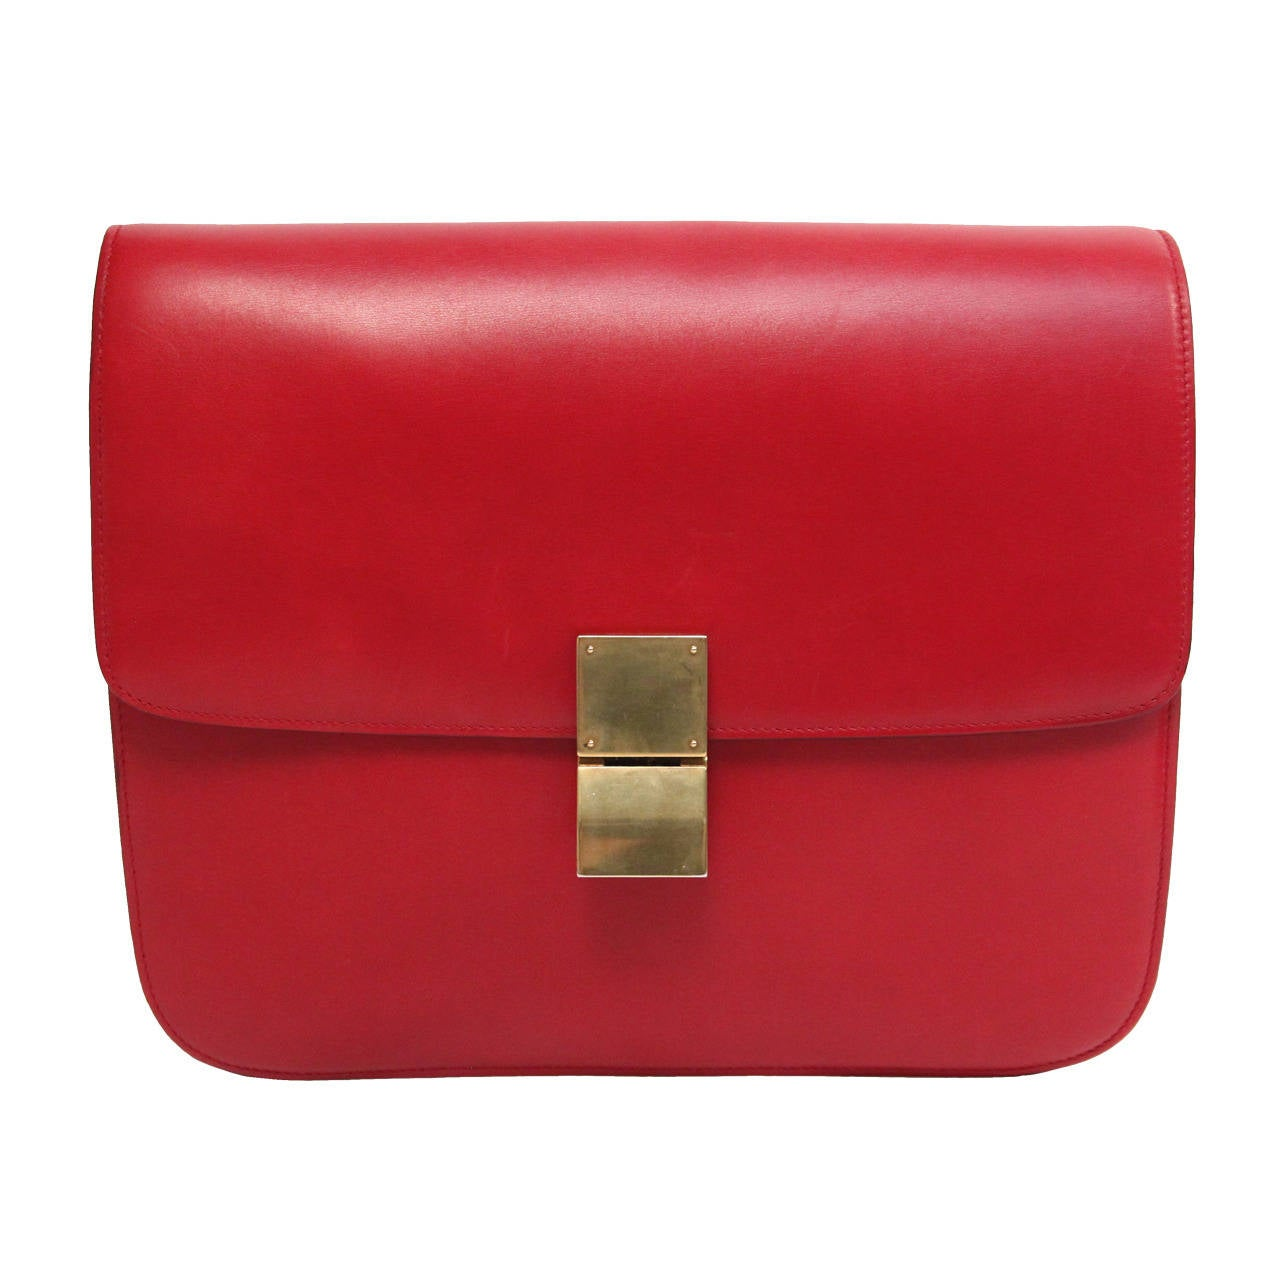 CELINE large classic box leather bag with convertible strap in red 1